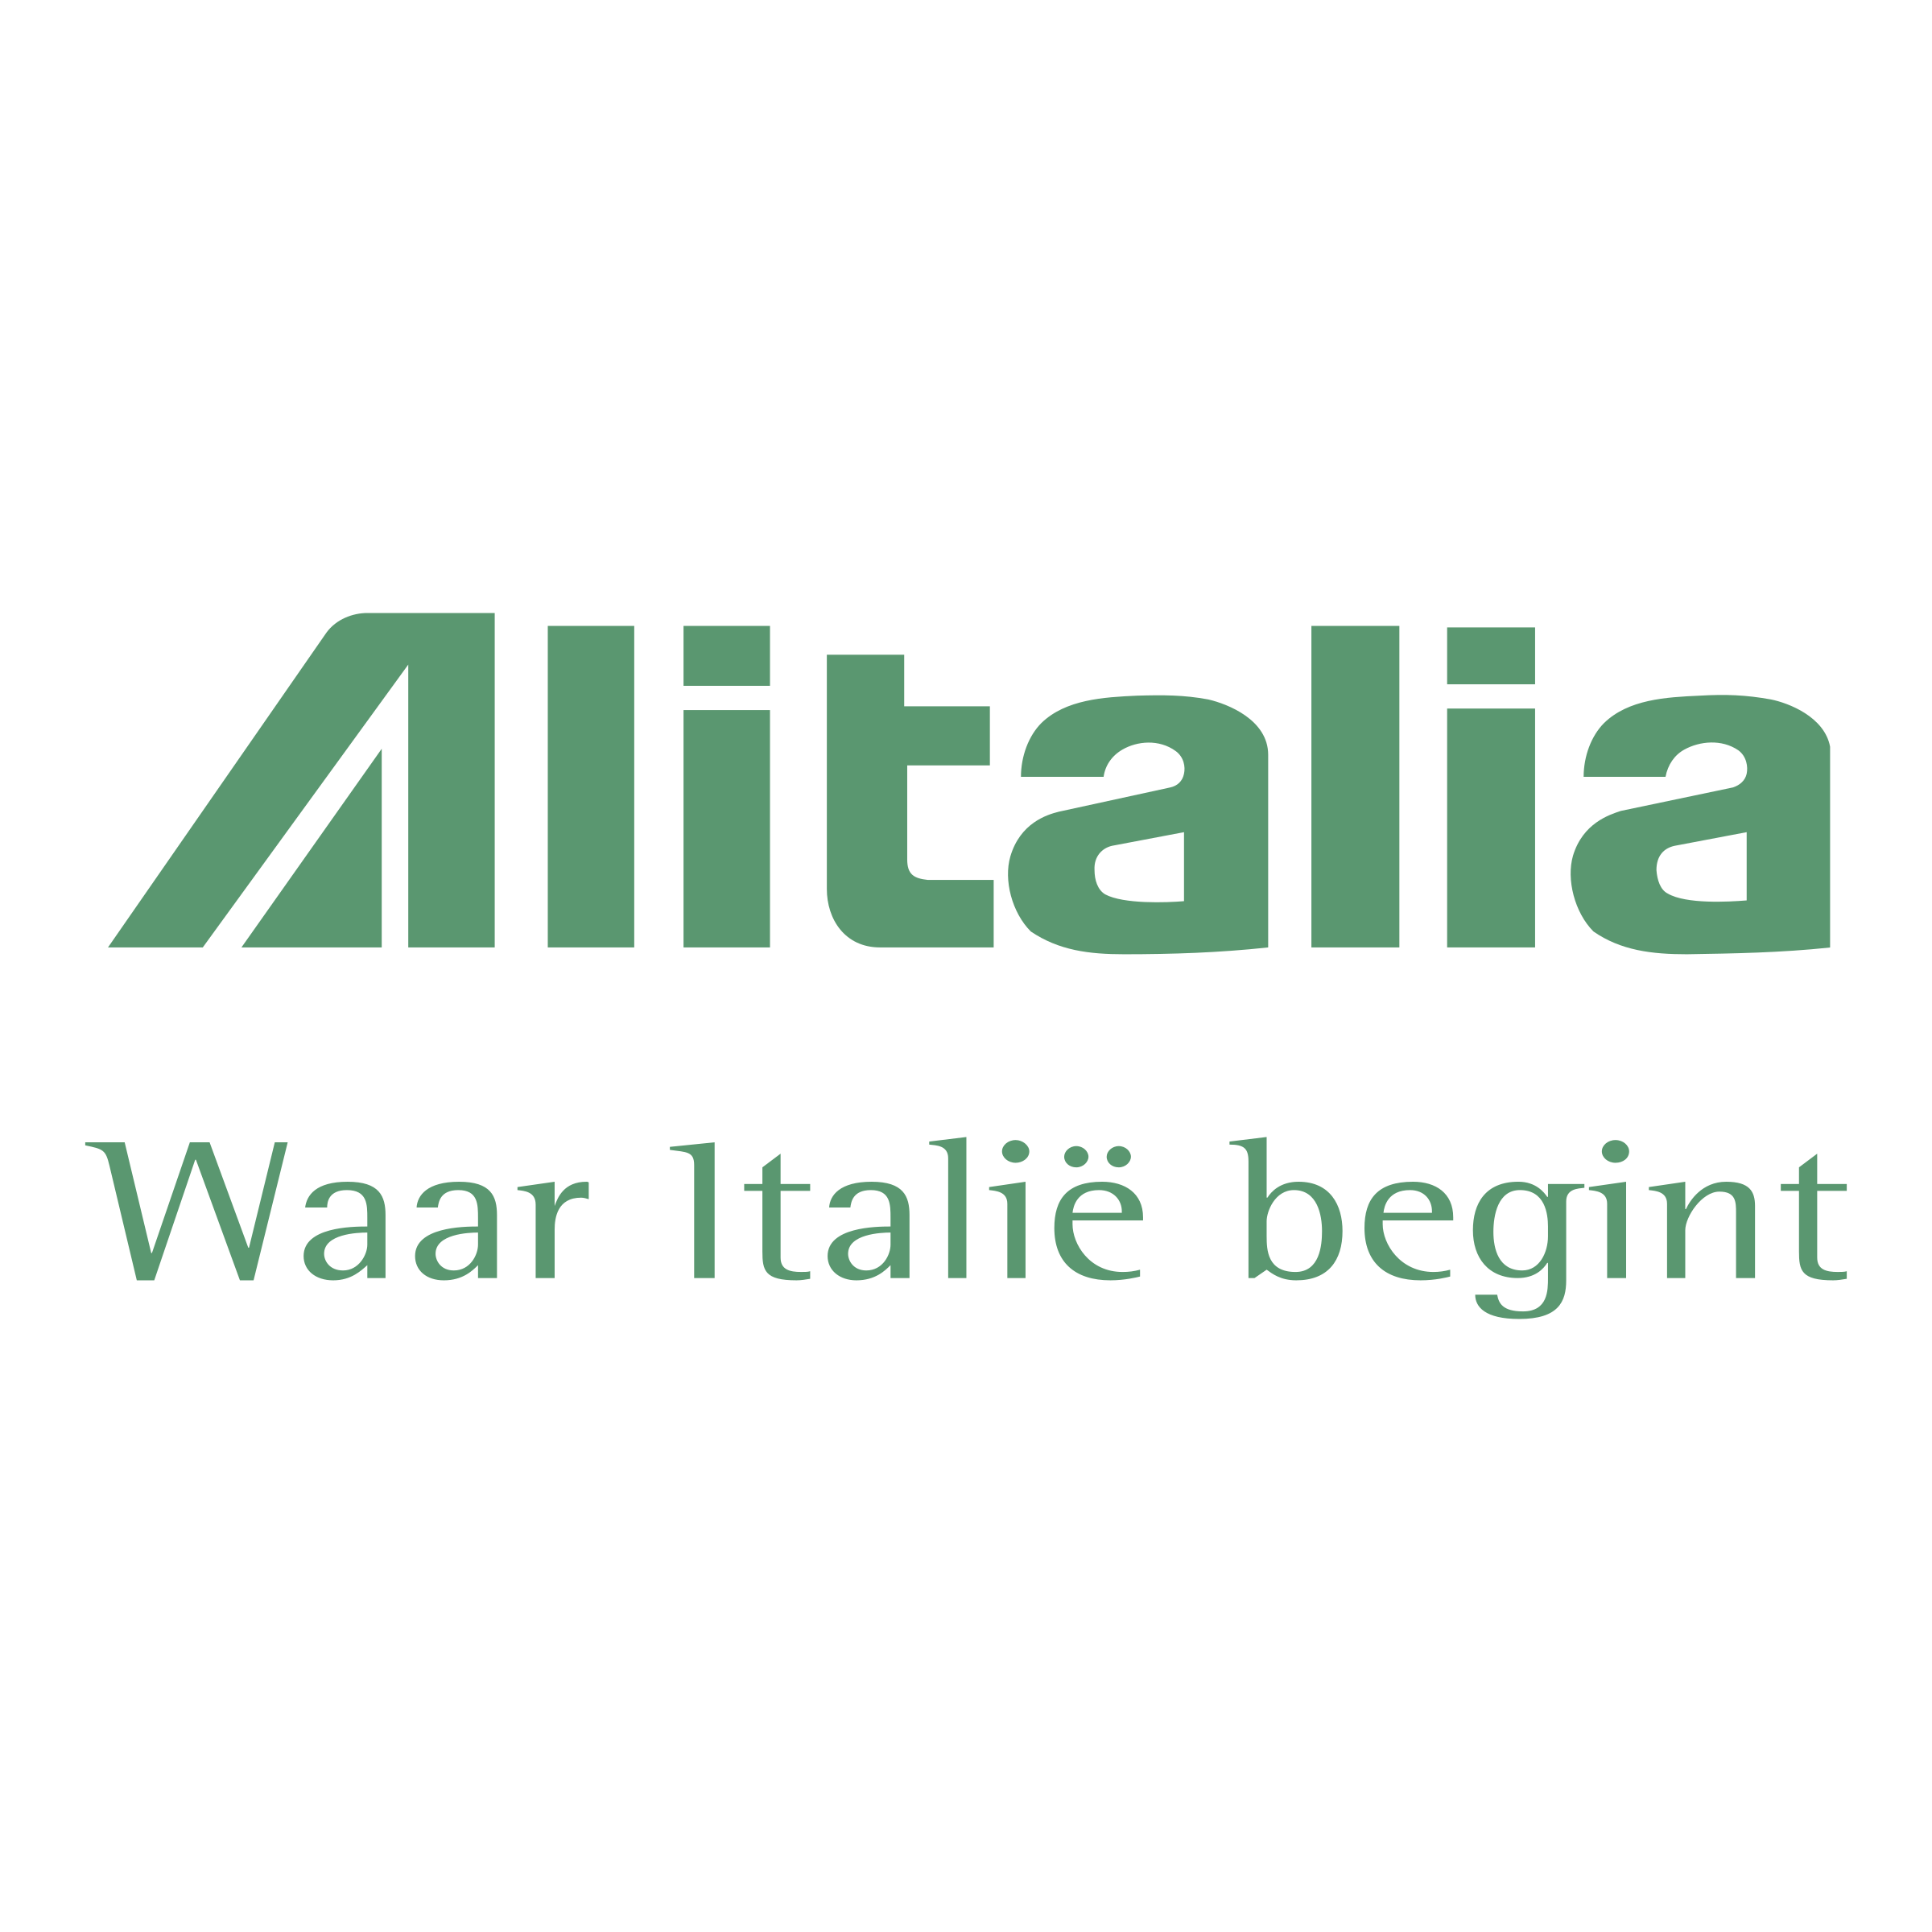 Alitalia 01 Logo PNG Transparent & SVG Vector.